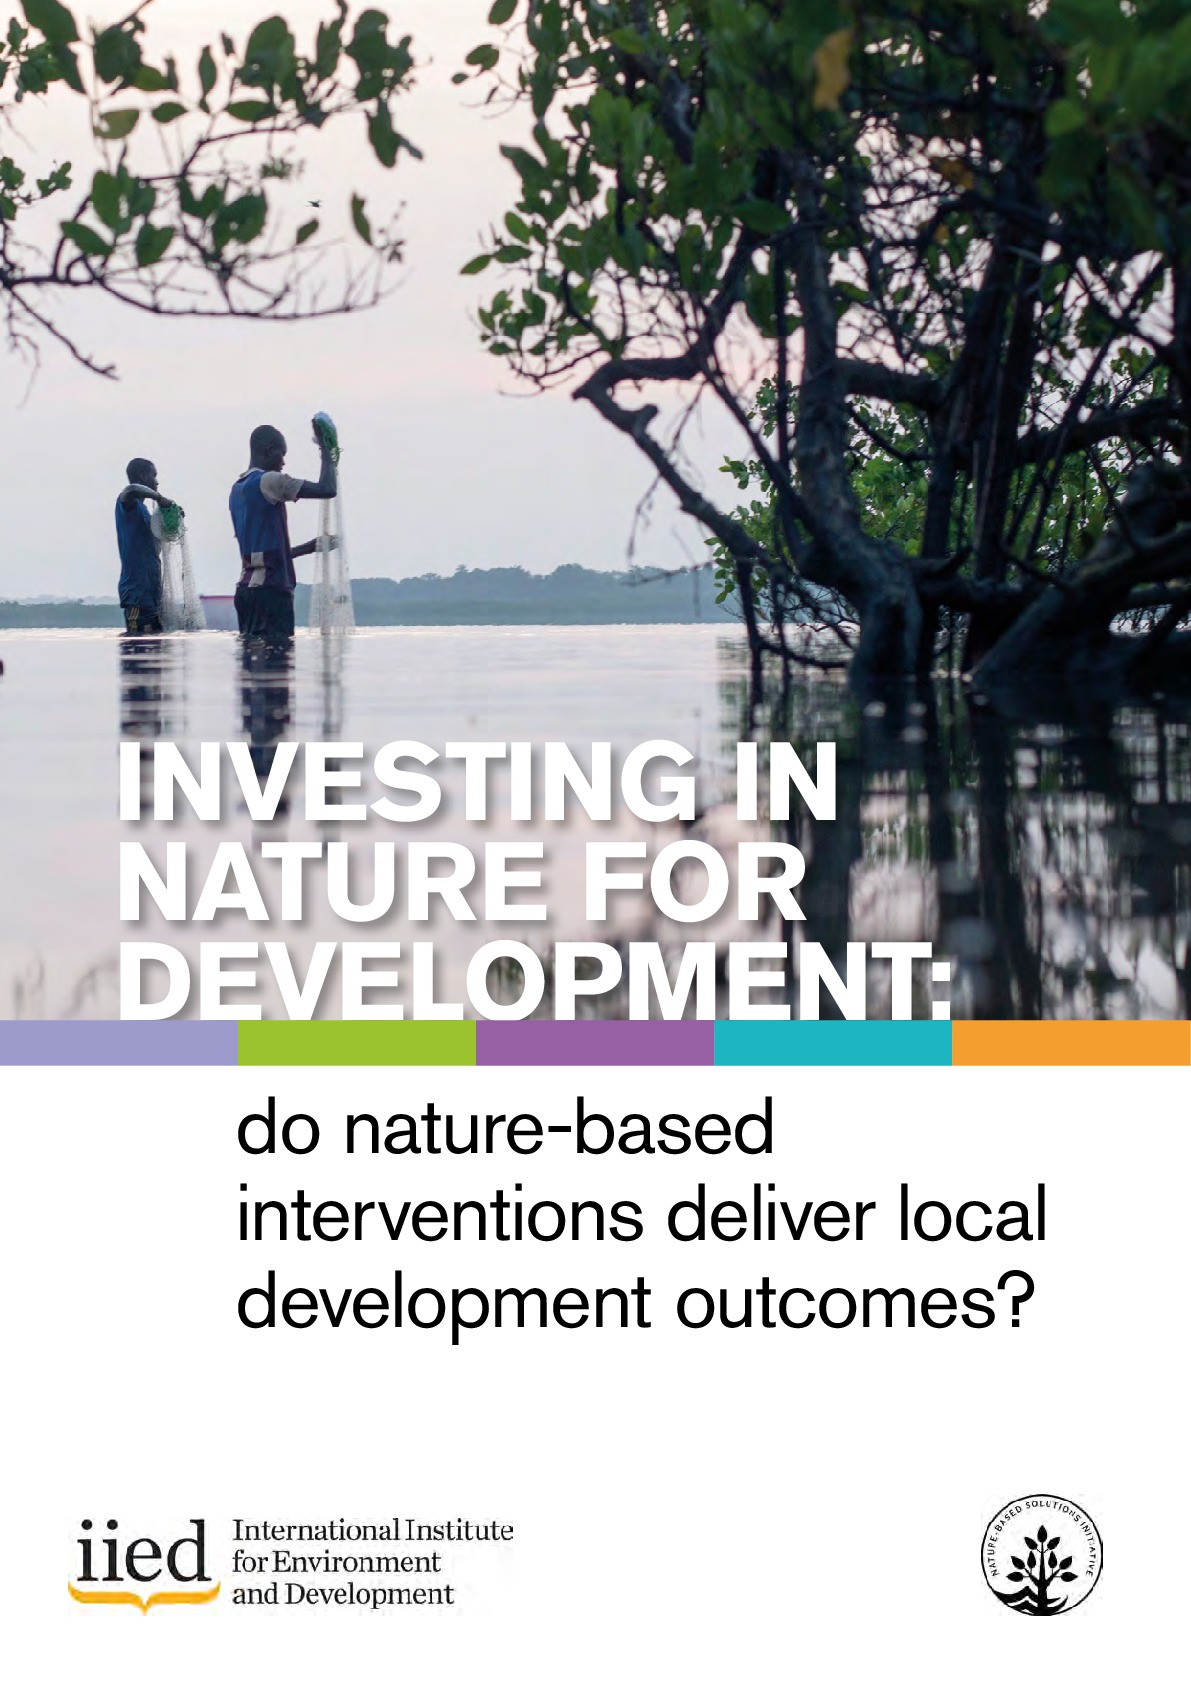 Investing in nature for development: do nature-based interventions deliver local development outcomes?